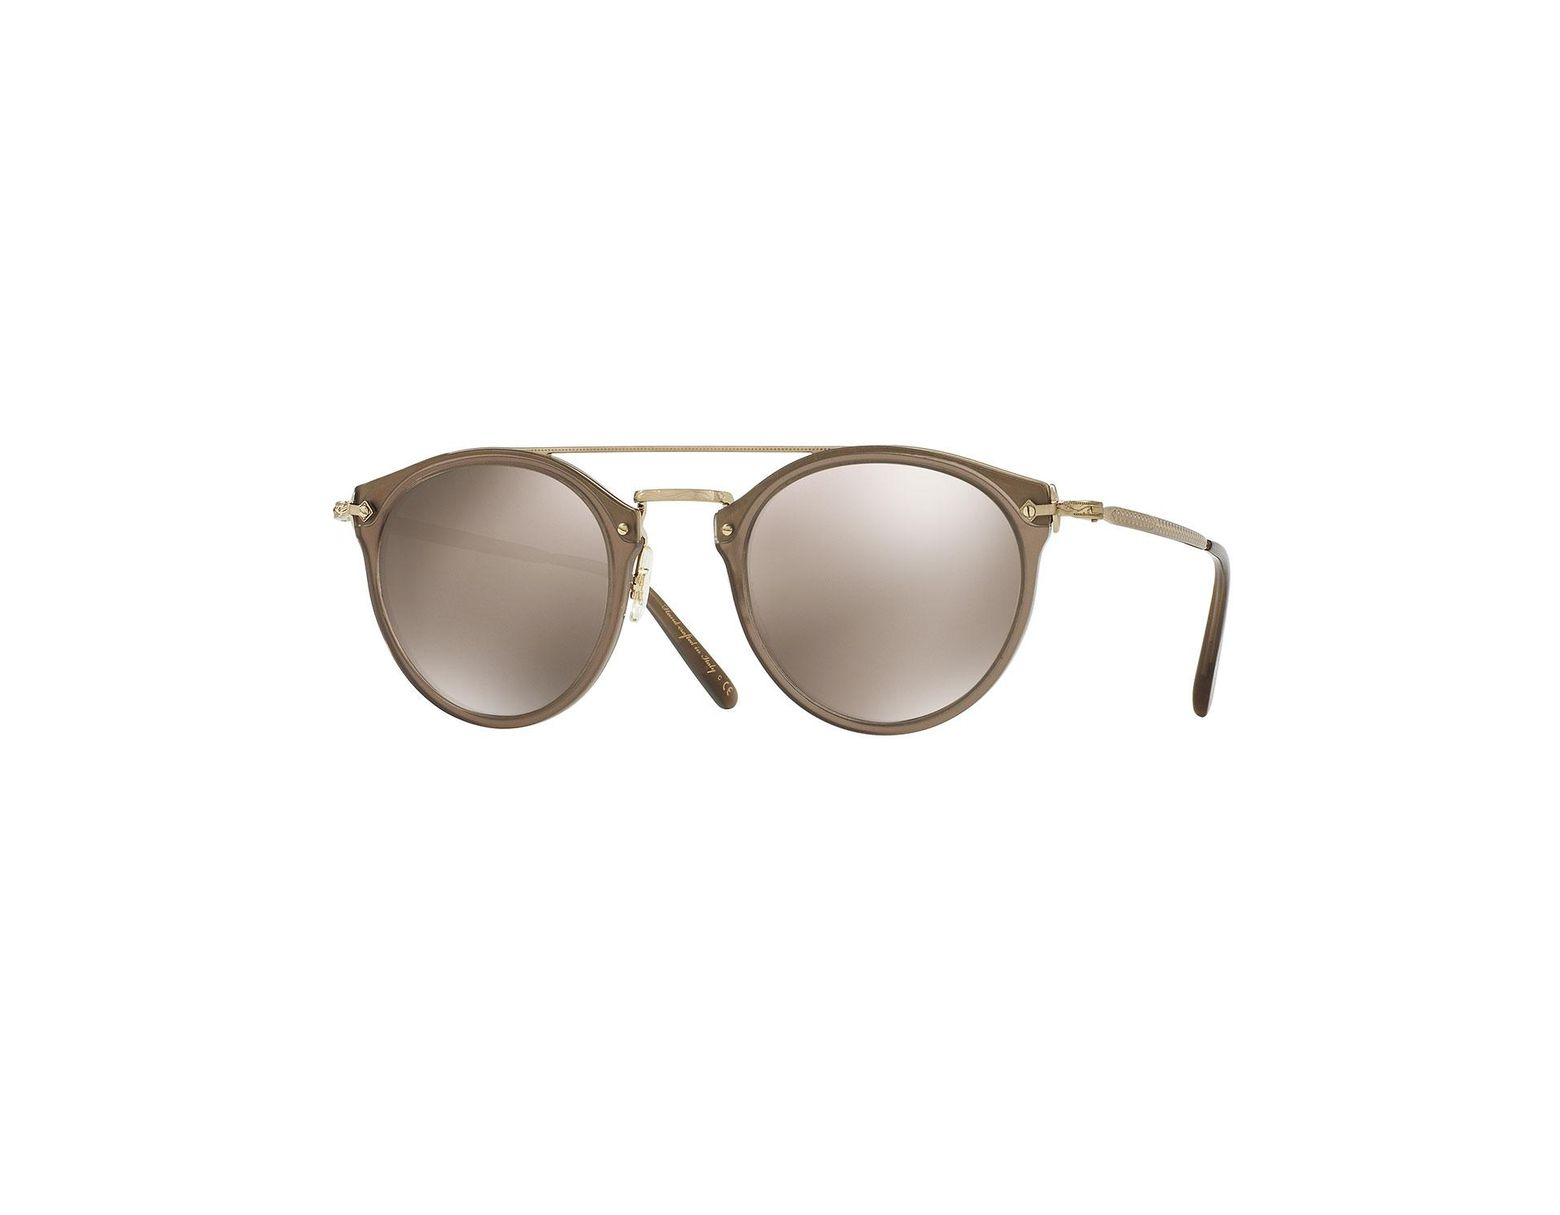 1d2efced4 Oliver Peoples Remick Mirrored Brow-bar Sunglasses - Lyst